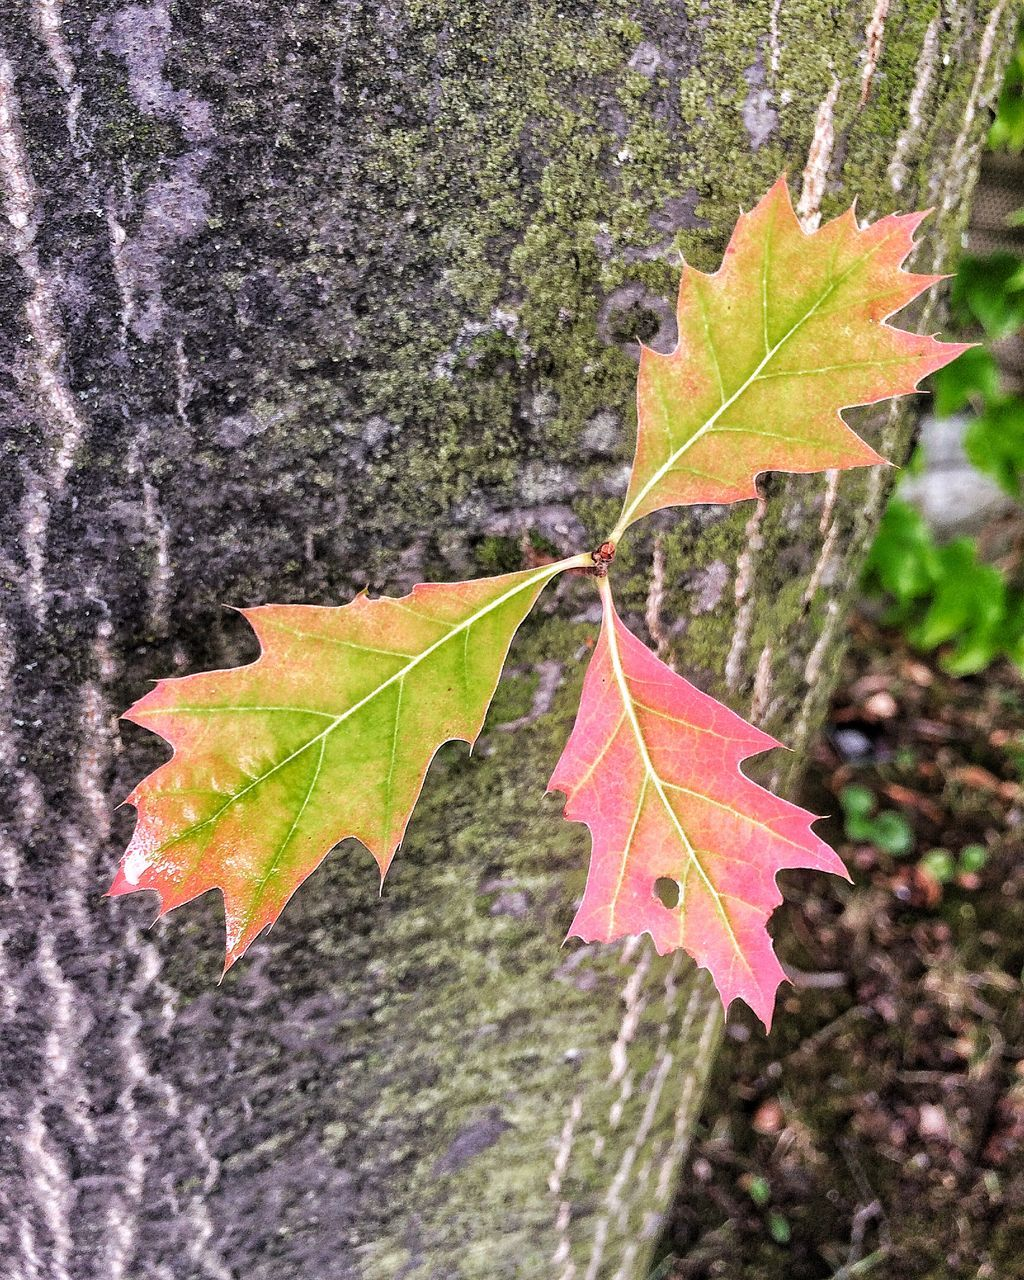 leaf, autumn, change, nature, maple leaf, day, maple, outdoors, no people, focus on foreground, close-up, selective focus, beauty in nature, growth, scenics